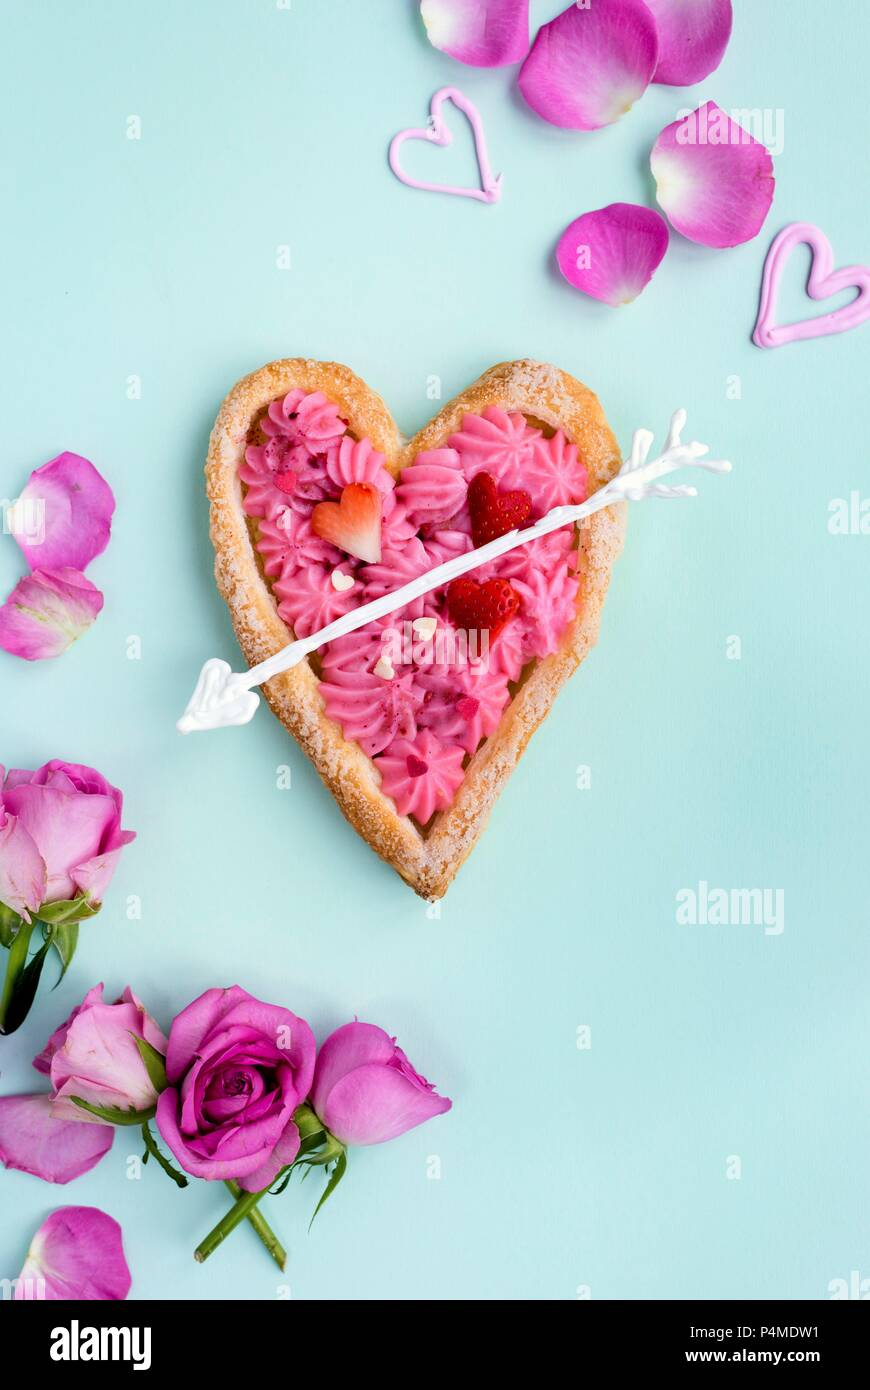 Heart shaped puff pastry tart filled with rose pastry cream for Valentine's Day - Stock Image